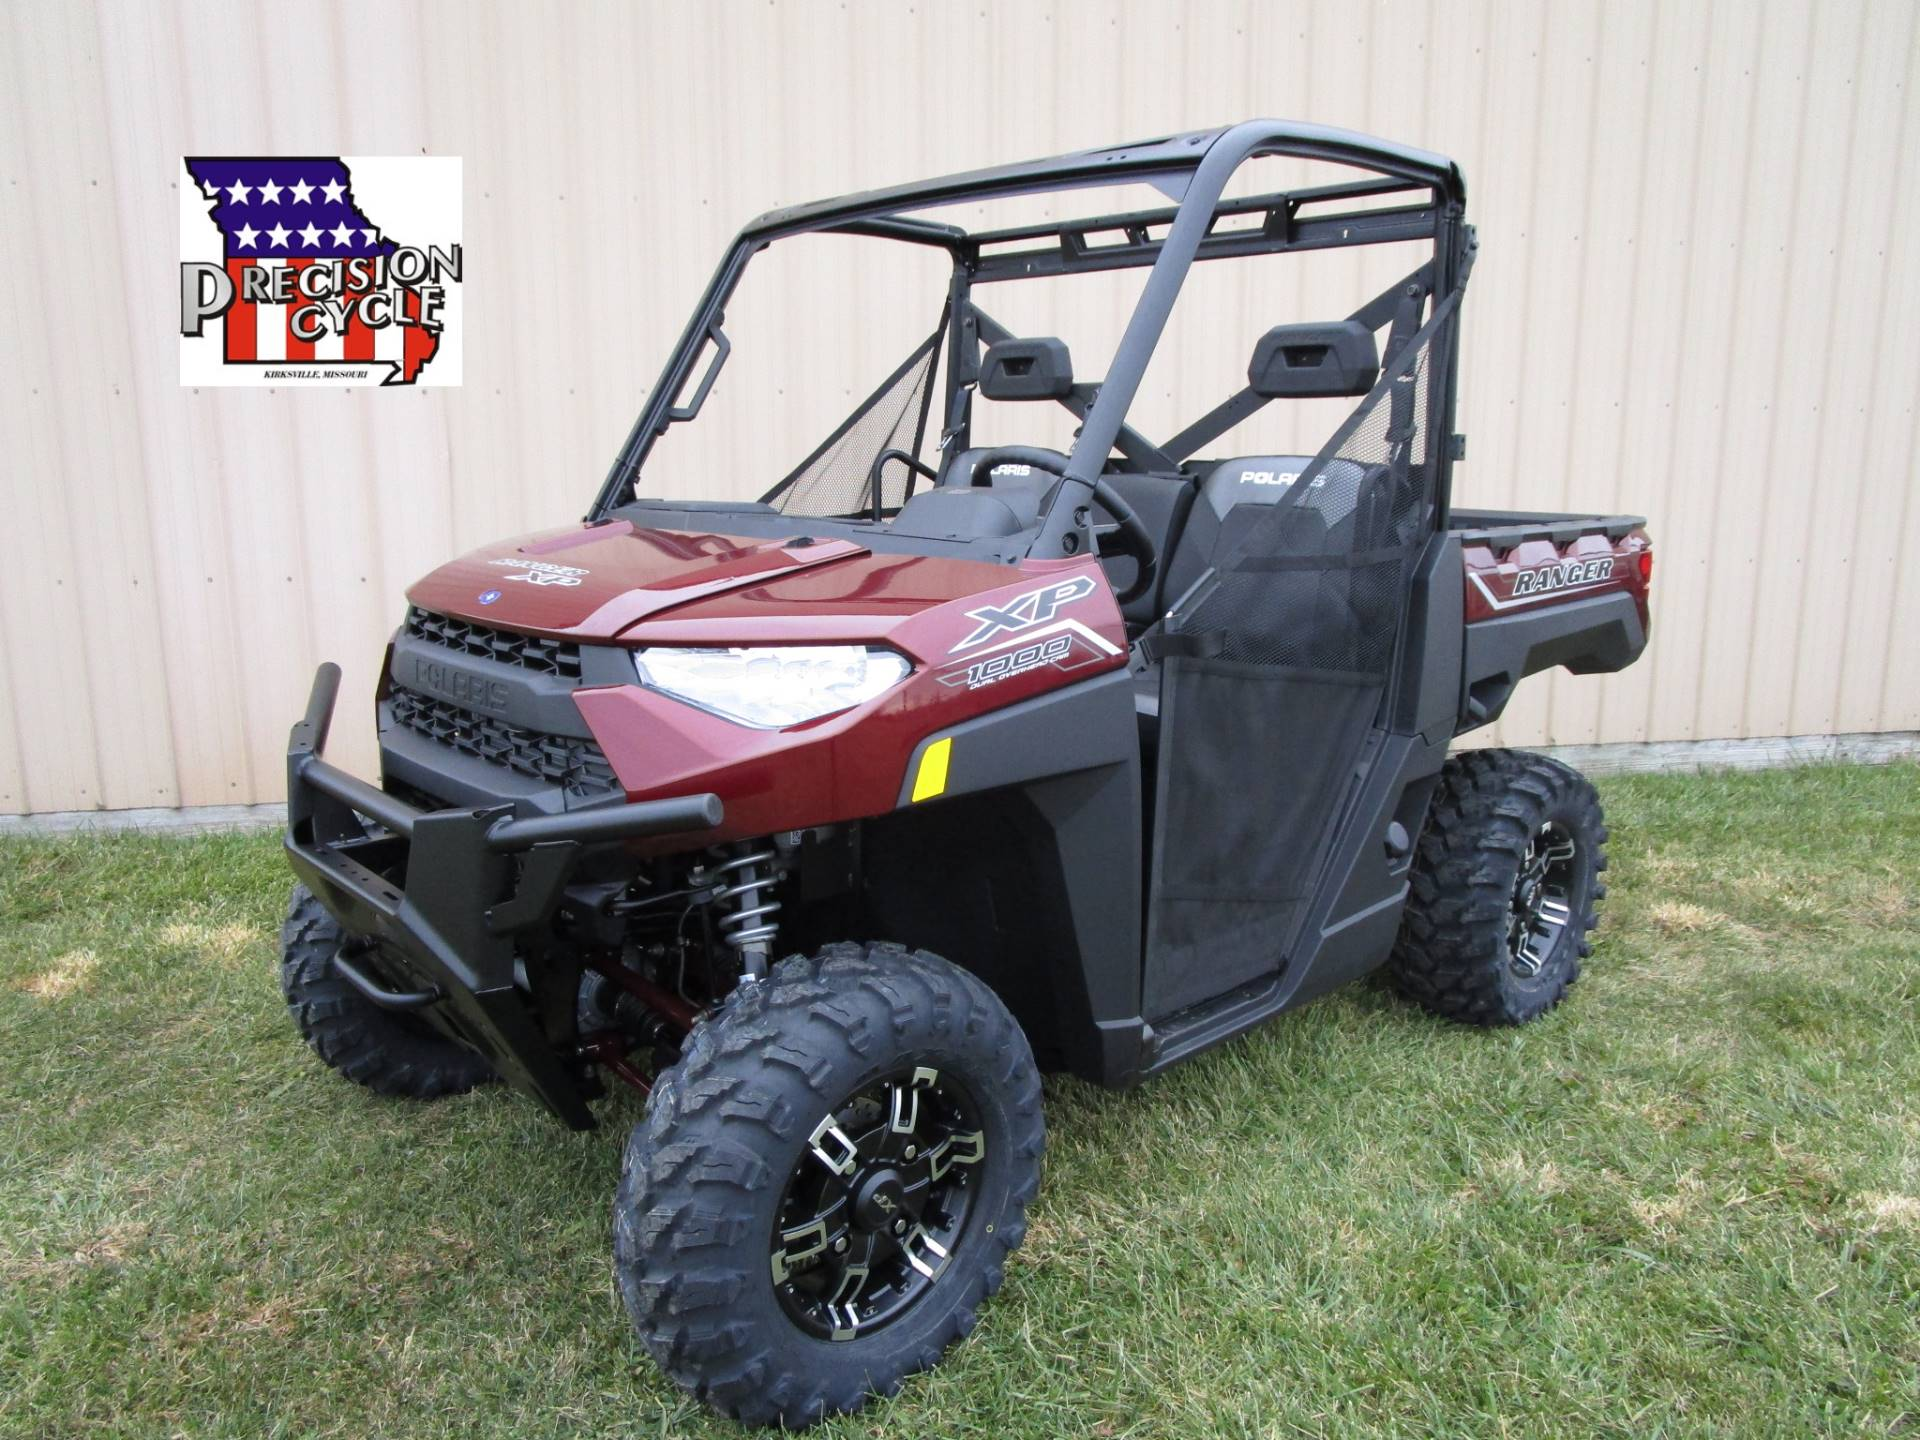 2021 Polaris Ranger XP 1000 Premium in Kirksville, Missouri - Photo 1